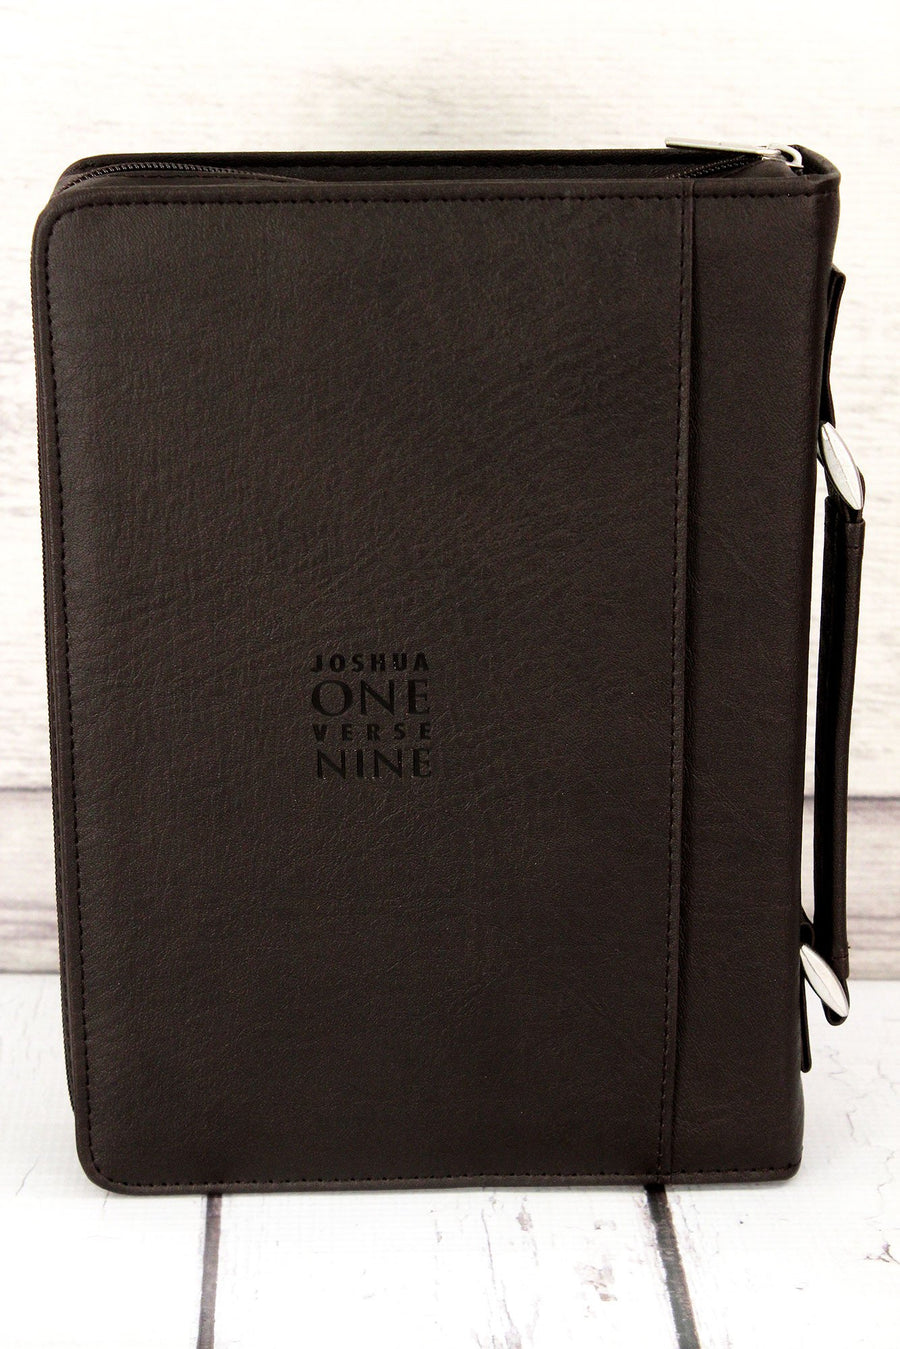 Joshua 1:9 'Strong & Courageous' LuxLeather Large Bible Cover #BBL612